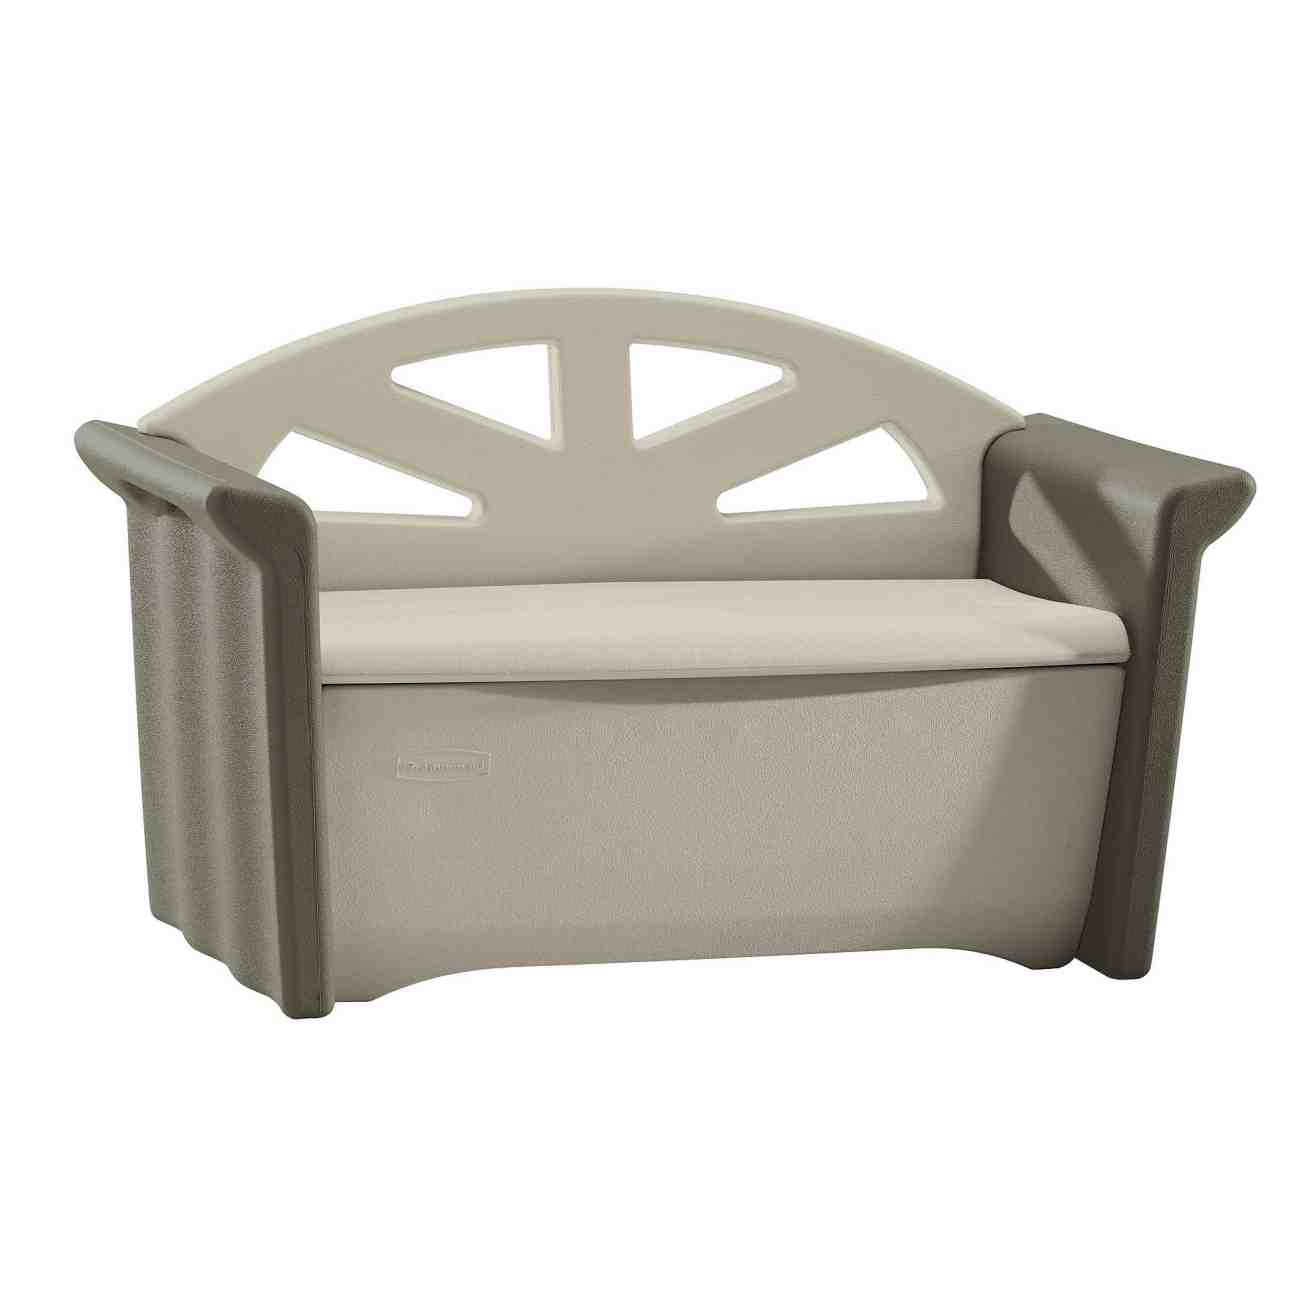 Rubbermaid Chairs Rubbermaid Outdoor Storage Bench Home Furniture Design